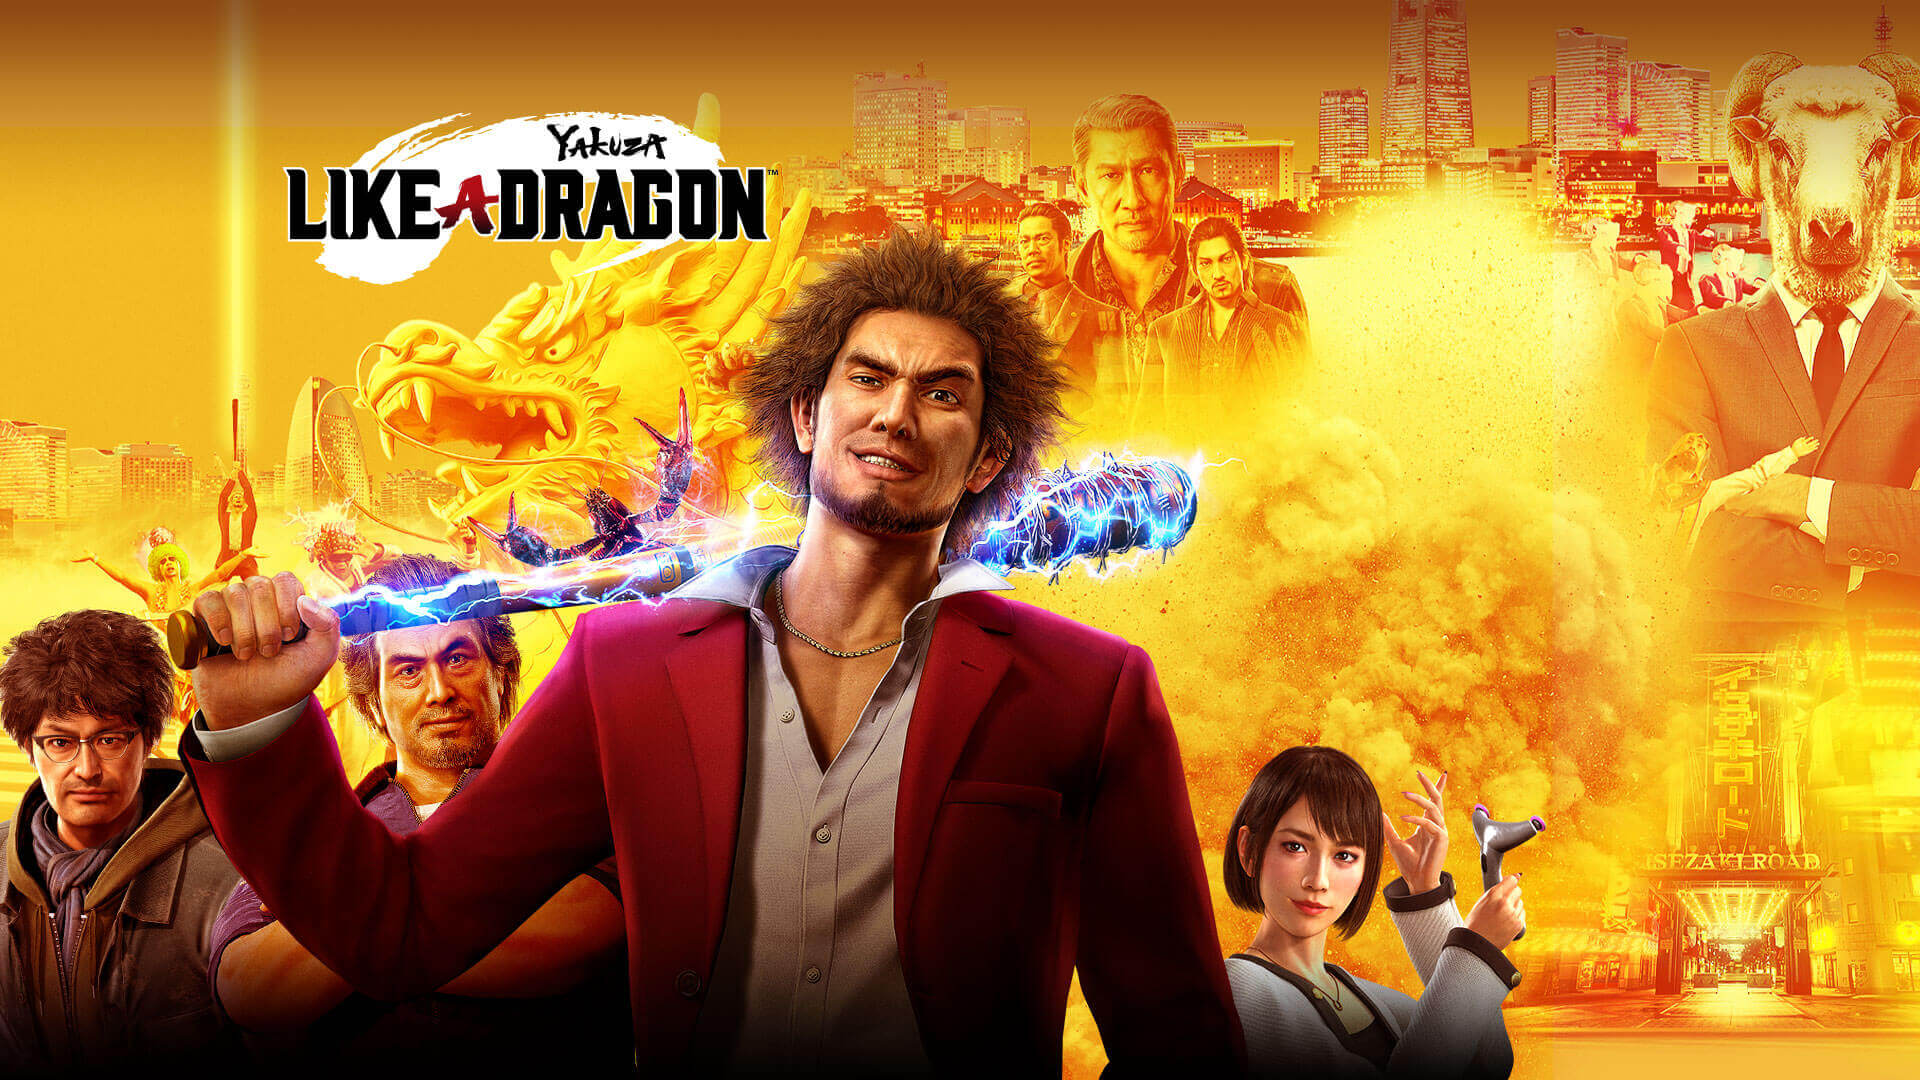 yakuza-like-a-dragon-review